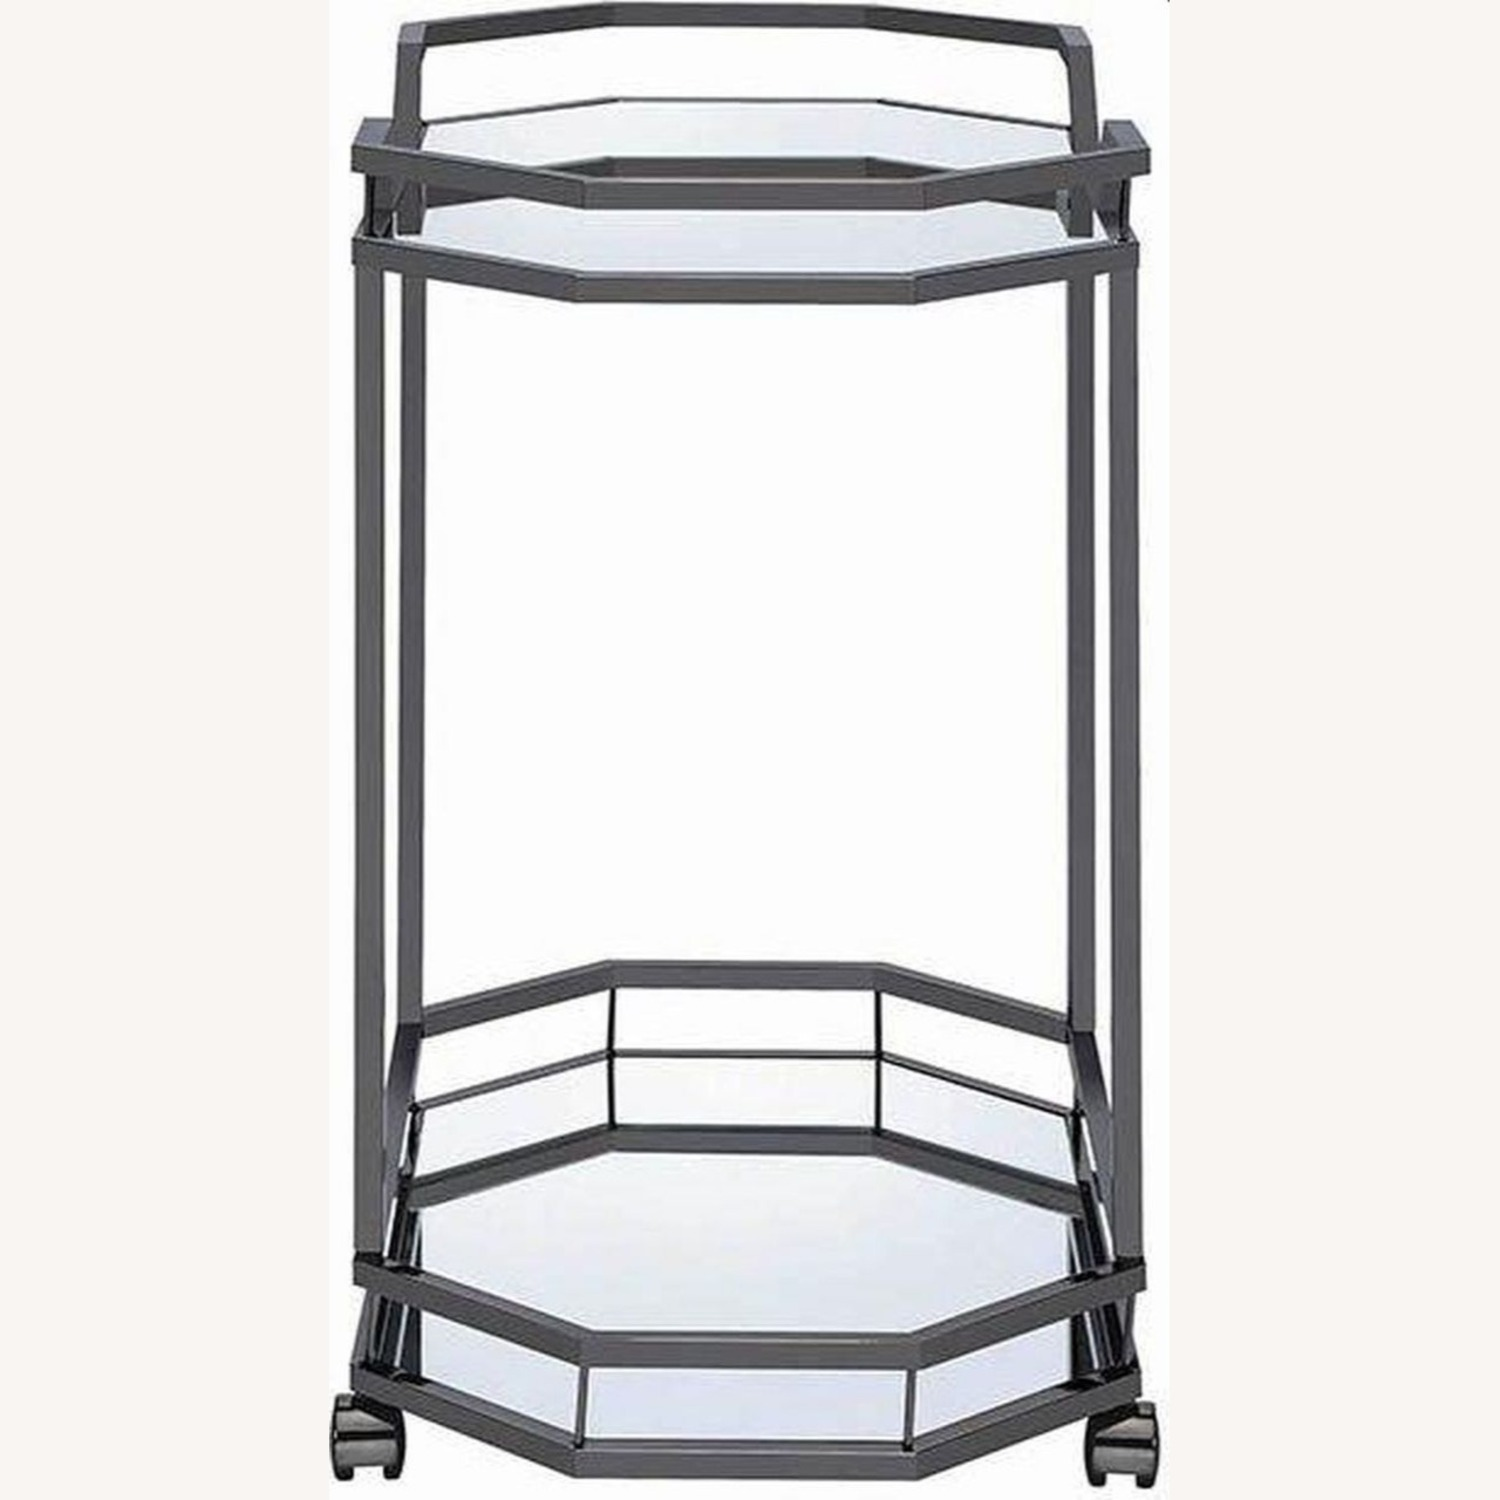 Serving Cart In Black Nickel W/ Mirrored Bottom - image-2